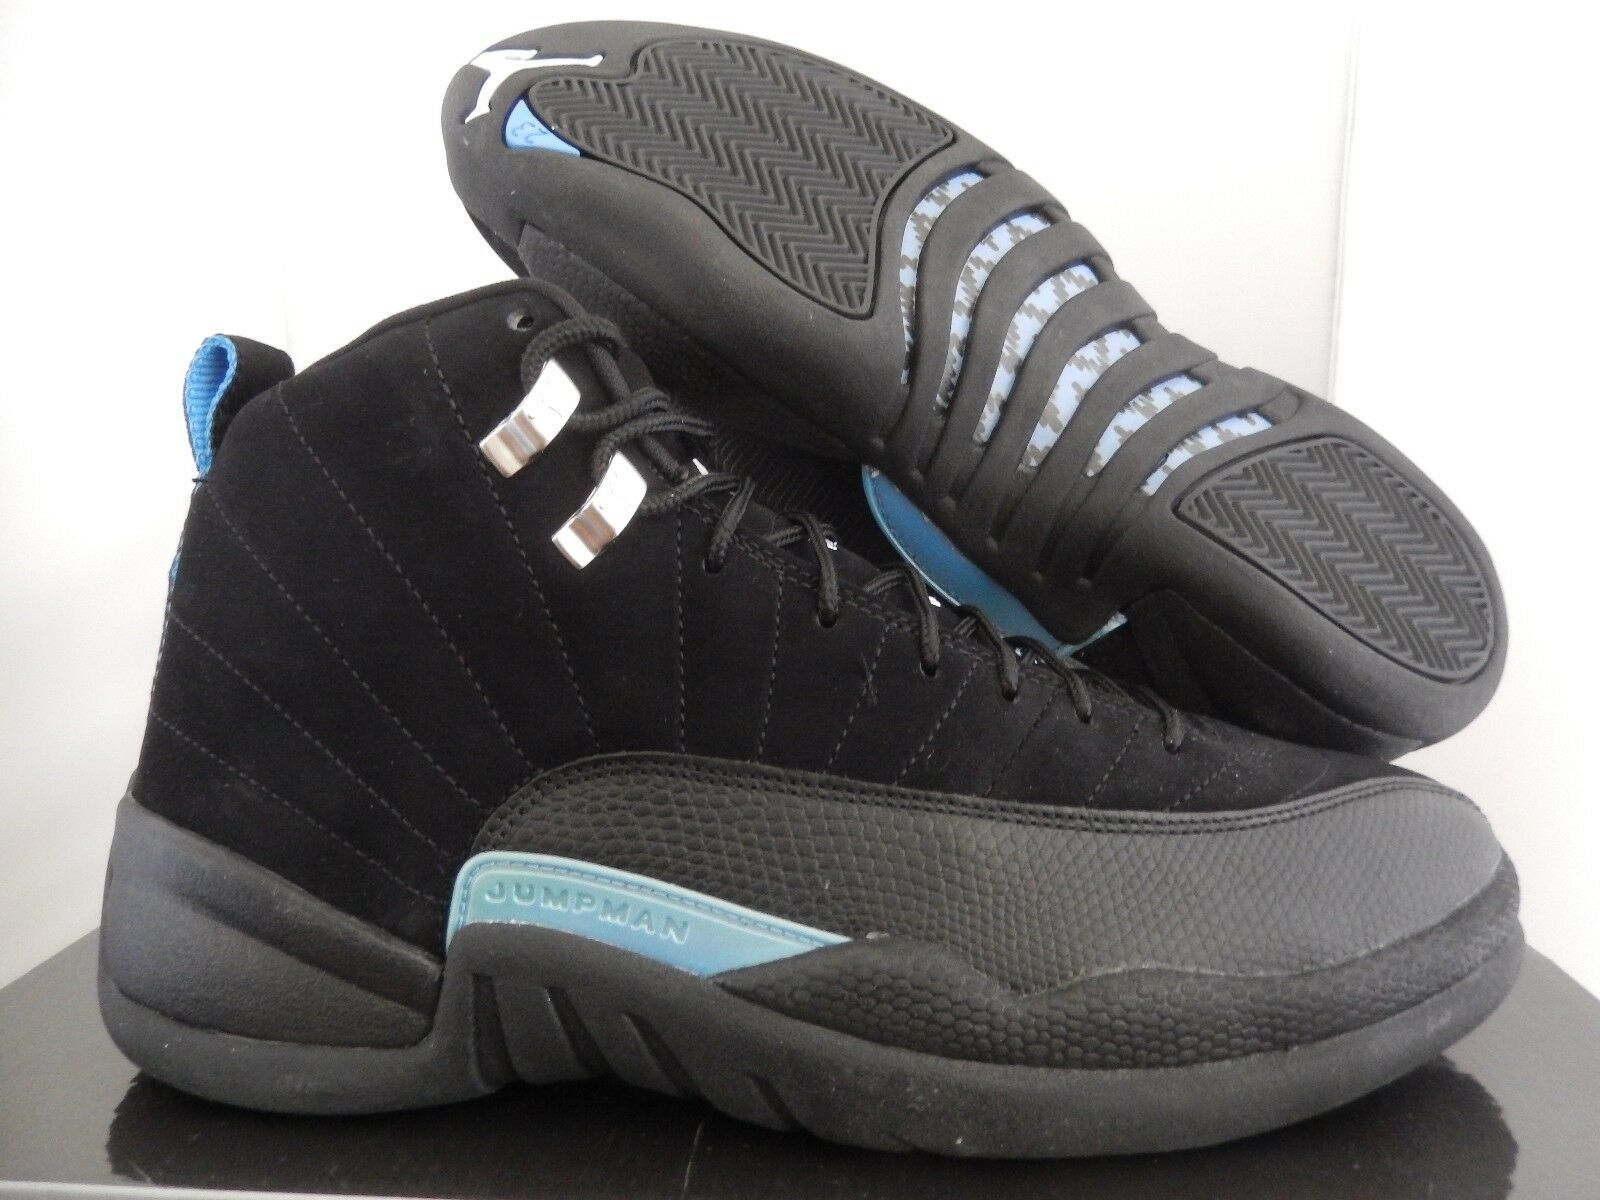 Nike air jordan 12 'nabuk nero-white-university blu sz 9 [130690-018]